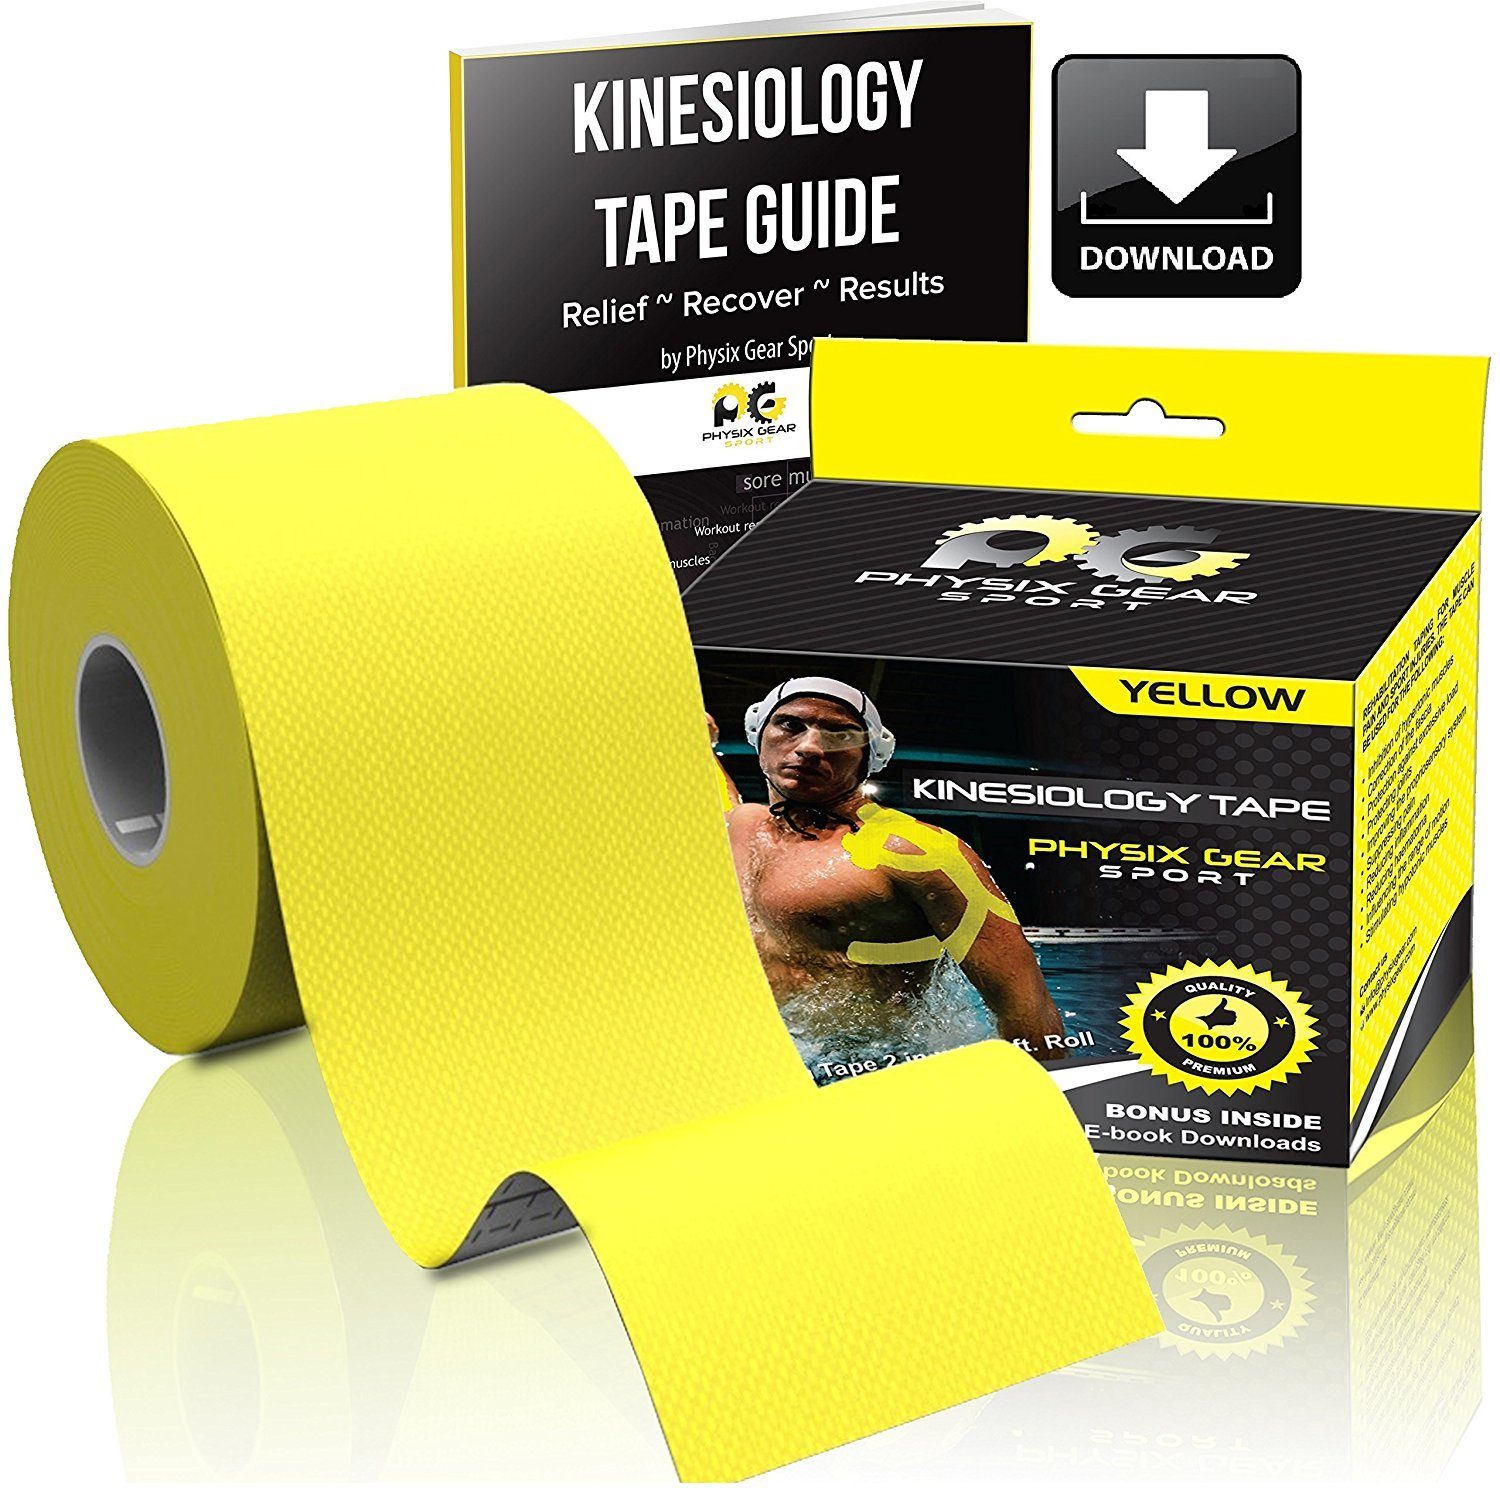 Physix Gear Sport Kinesiology Tape - Free Illustrated E-Guide - 16ft Uncut Roll - Best Pain Relief Adhesive for Muscles, Shin Splints Knee & Shoulder - 24/7 Waterproof Therapeutic Aid (1PK YEL) by Physix Gear Sport (Image #2)